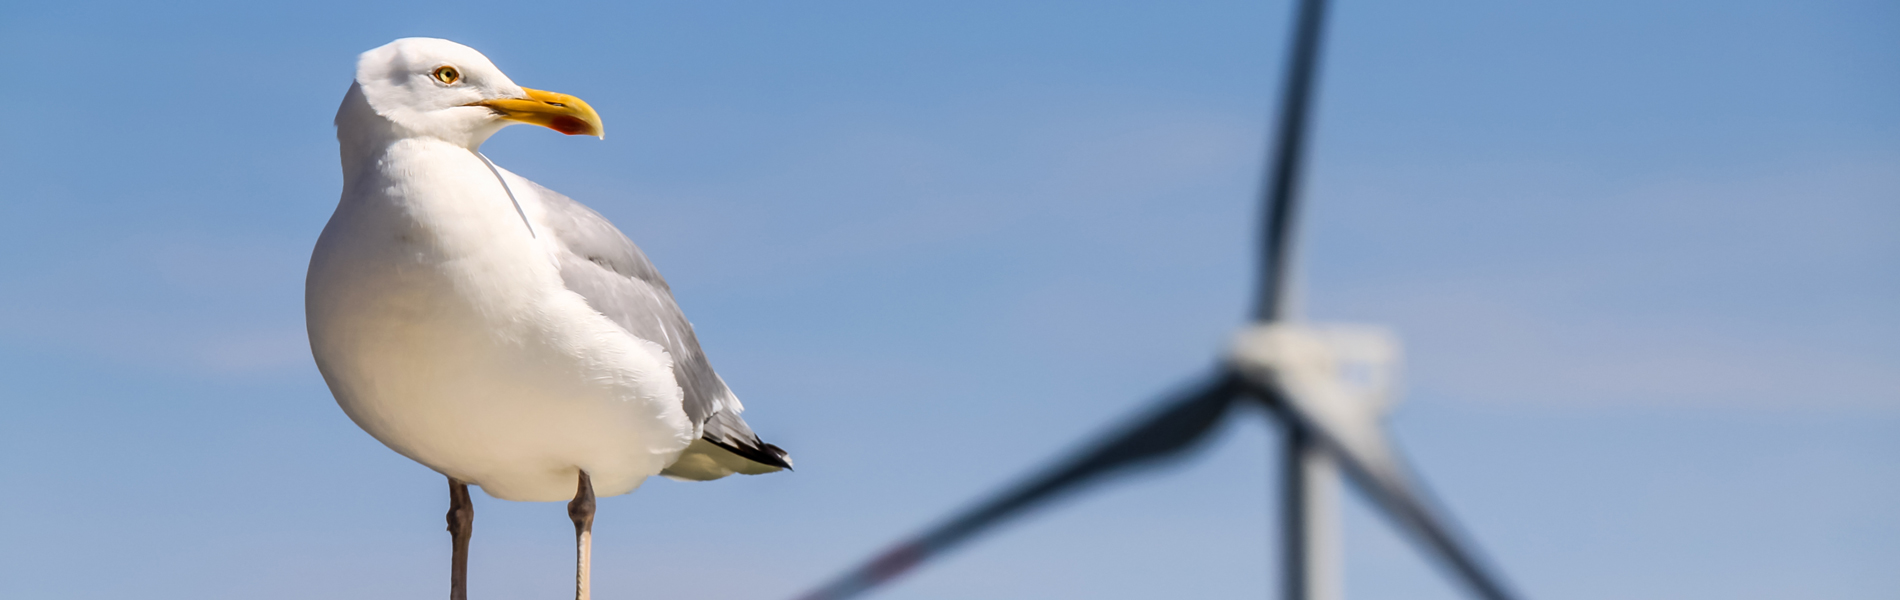 seagull dispersal from wind turbine at sea